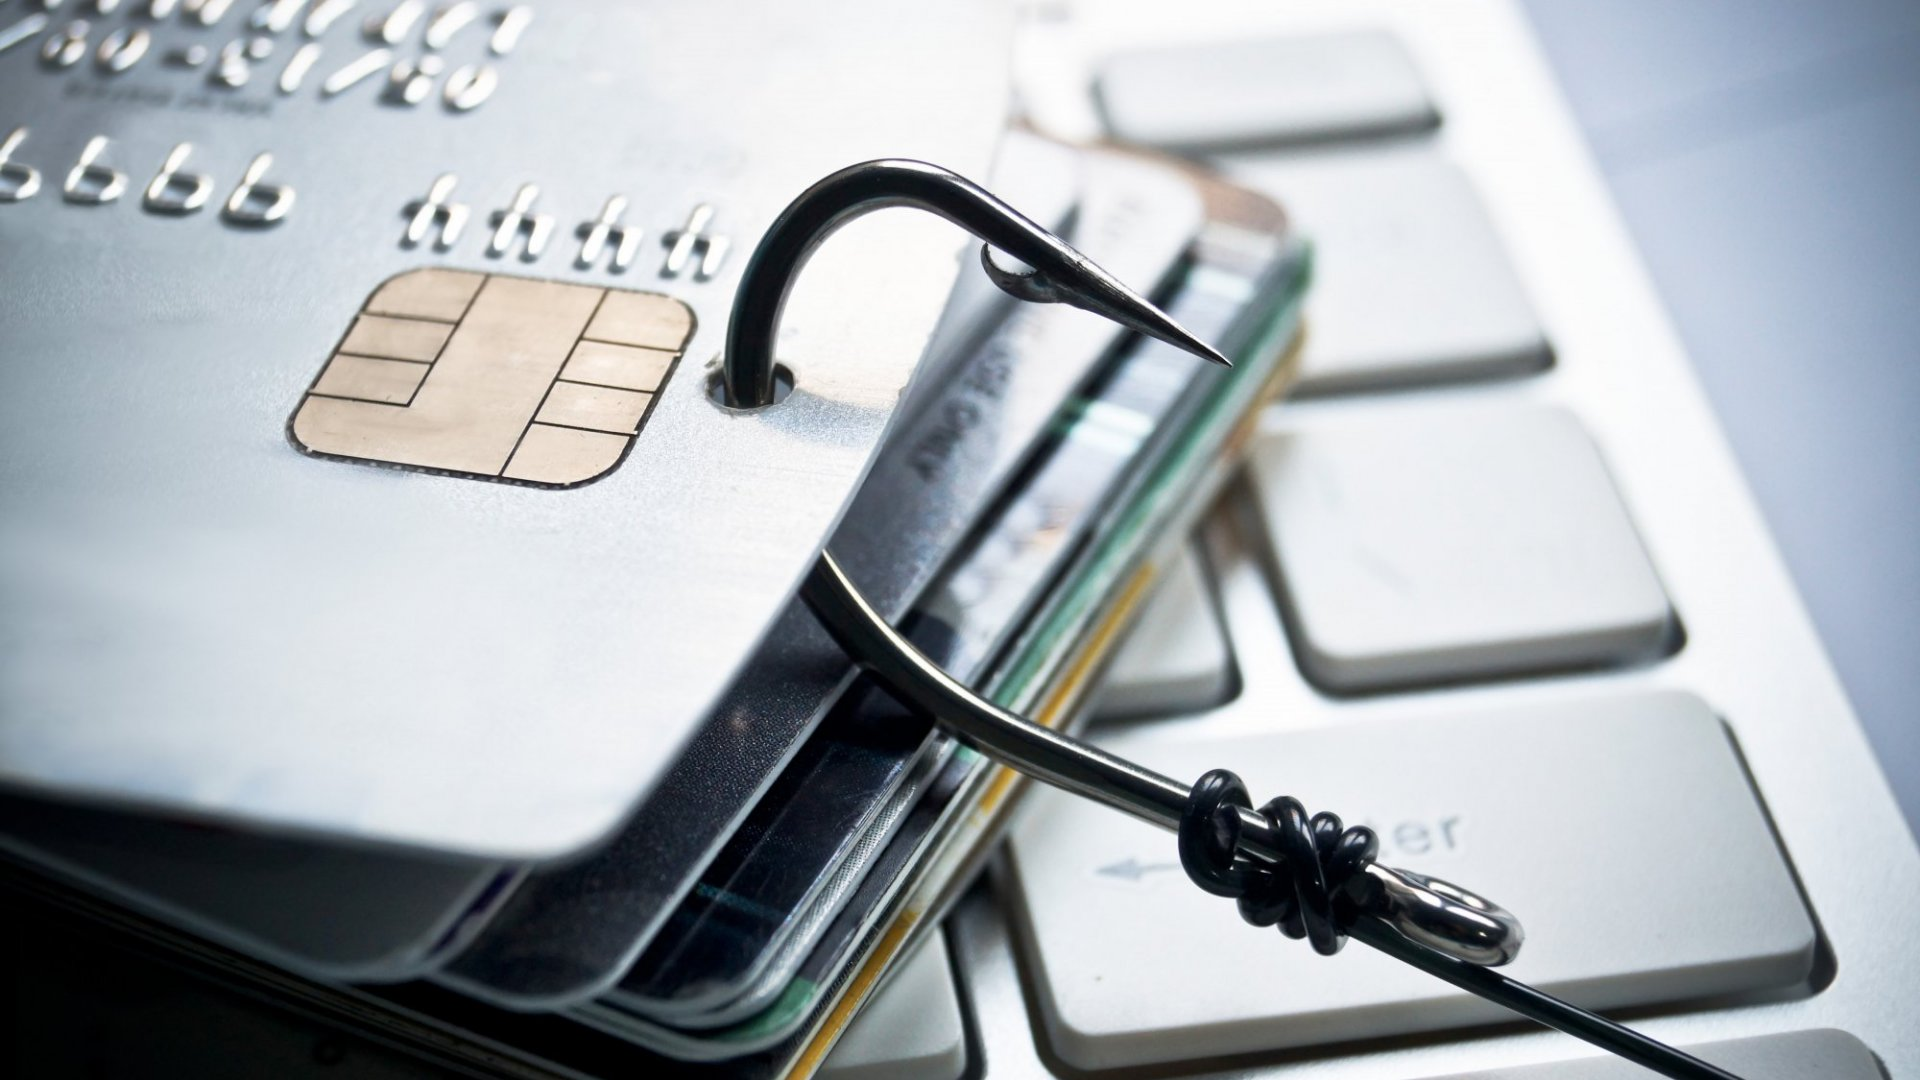 How to Protect Your Credit Card Information (and What to Do If It Does Get Stolen)